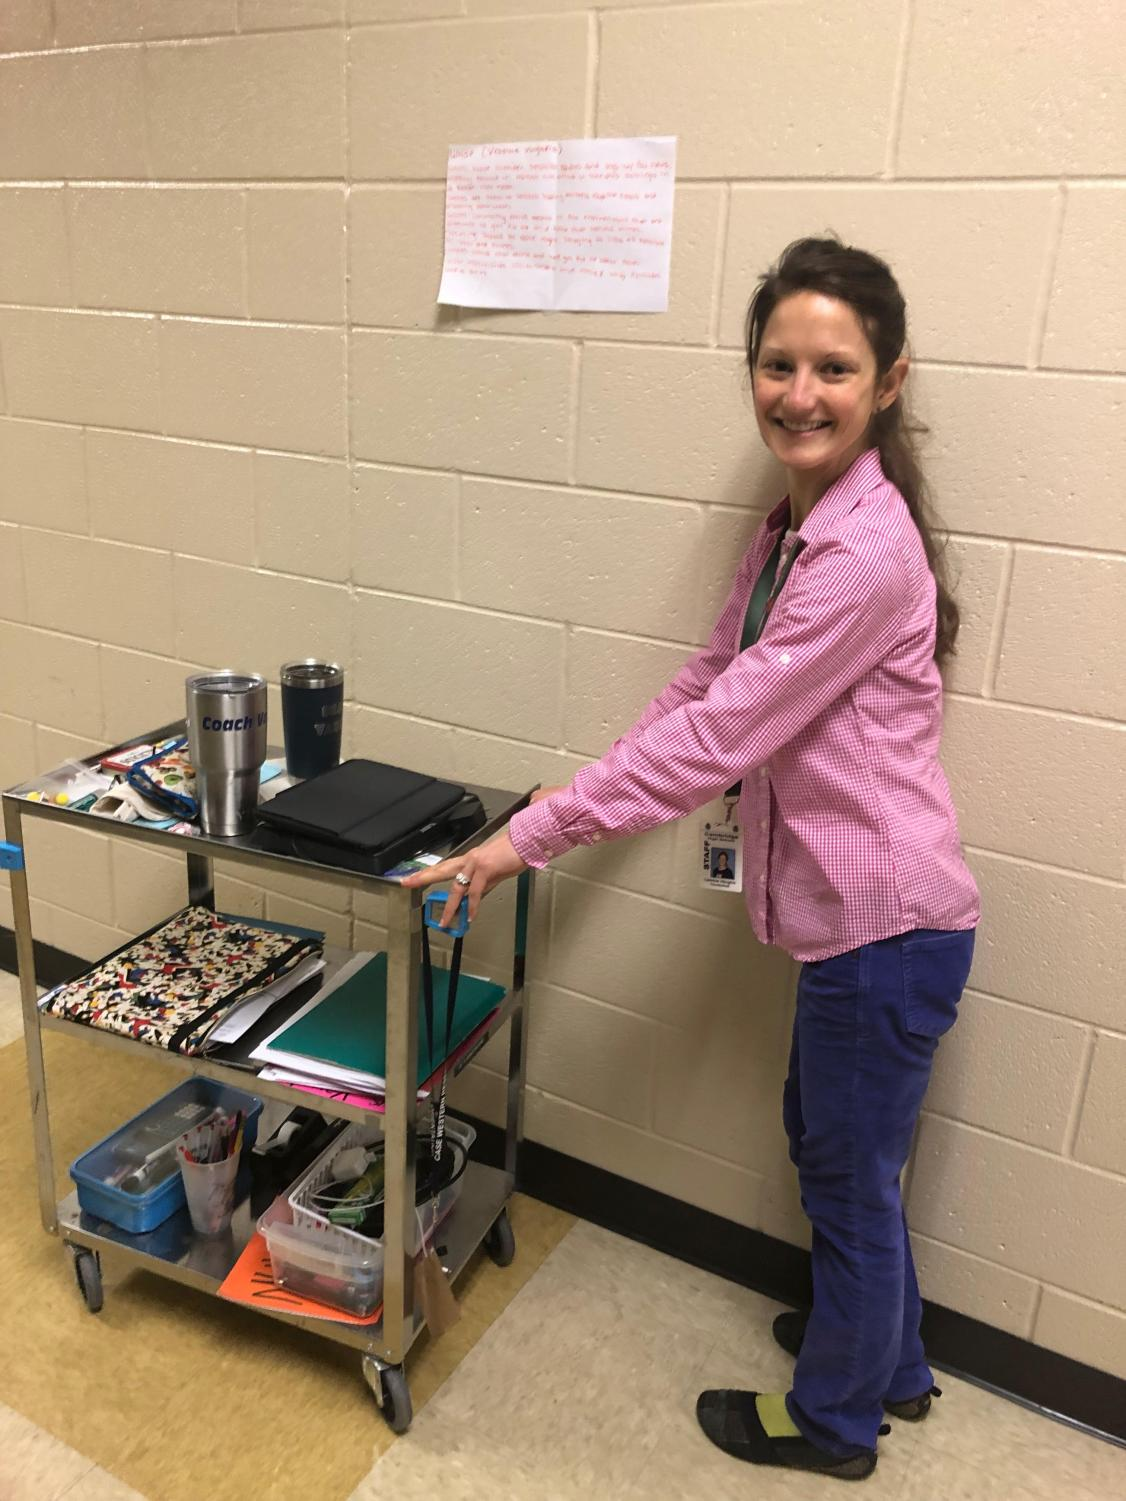 Chemistry teacher Leanne Vaughn with her cart, which carries many of her classroom materials.